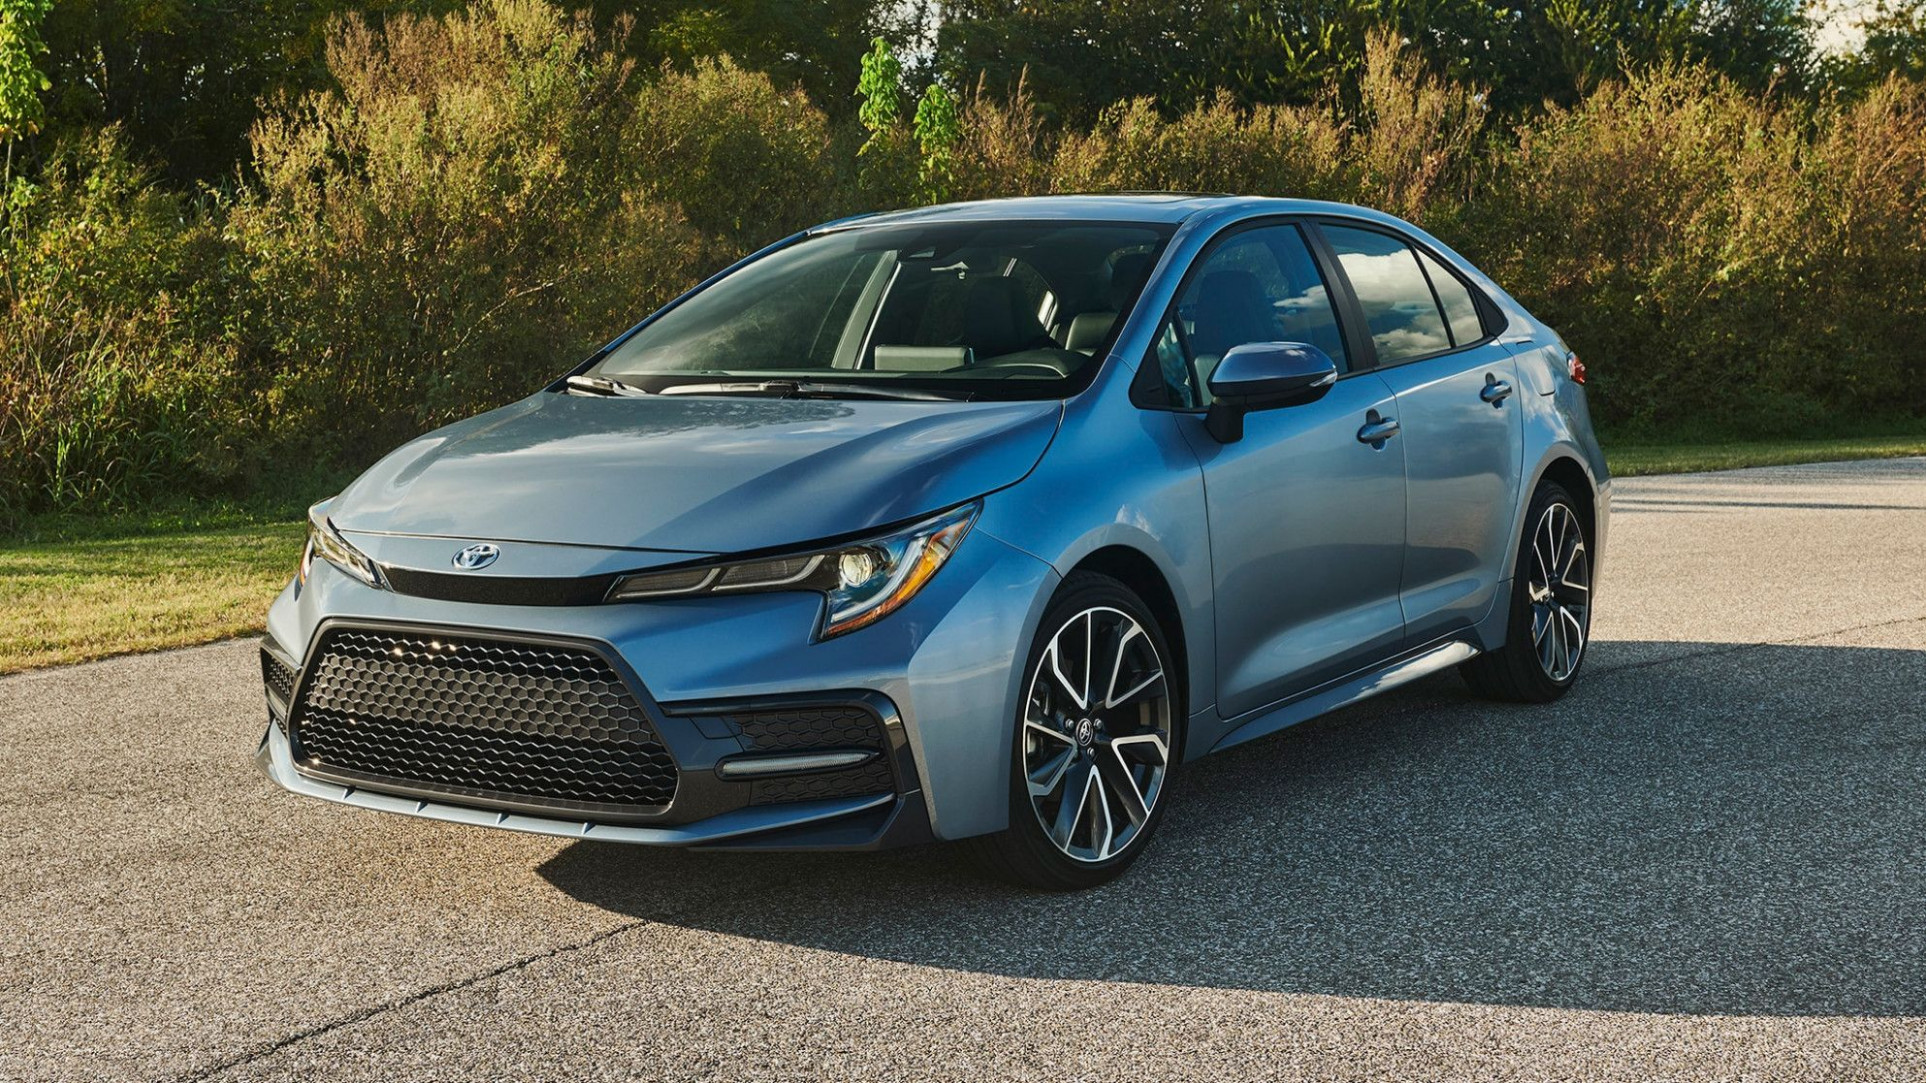 Toyota Im 5 Reviews in 5 (With images) | Upcoming cars ..